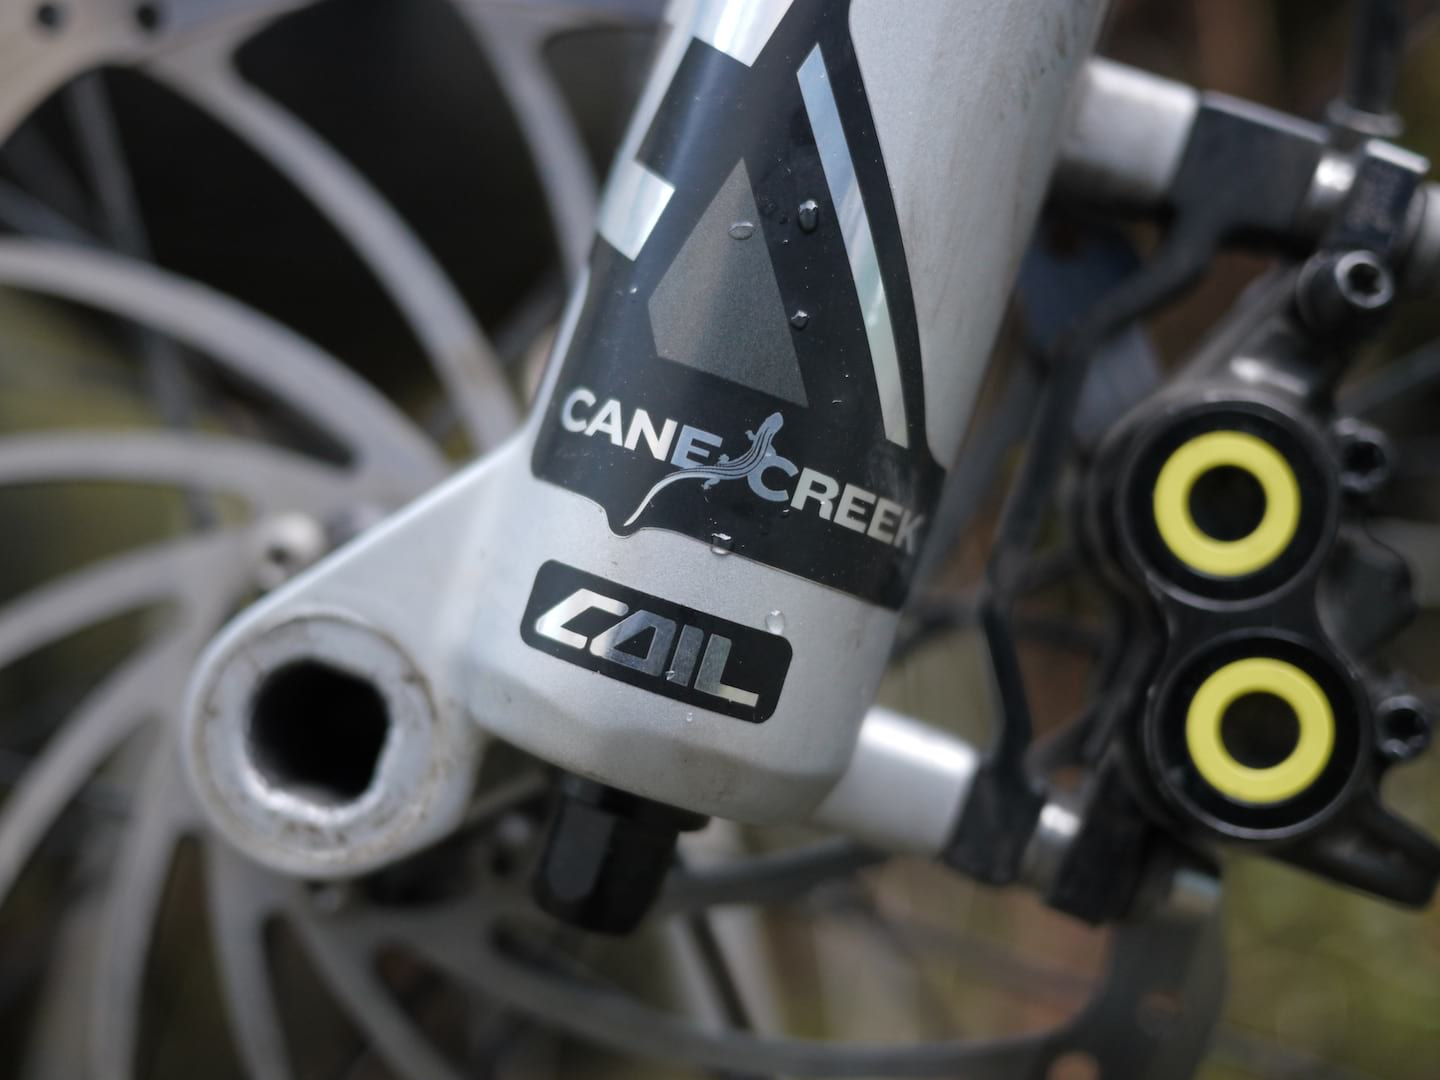 Review: The Cane Creek Helm Coil Fork – Is it better than the Helm Air?